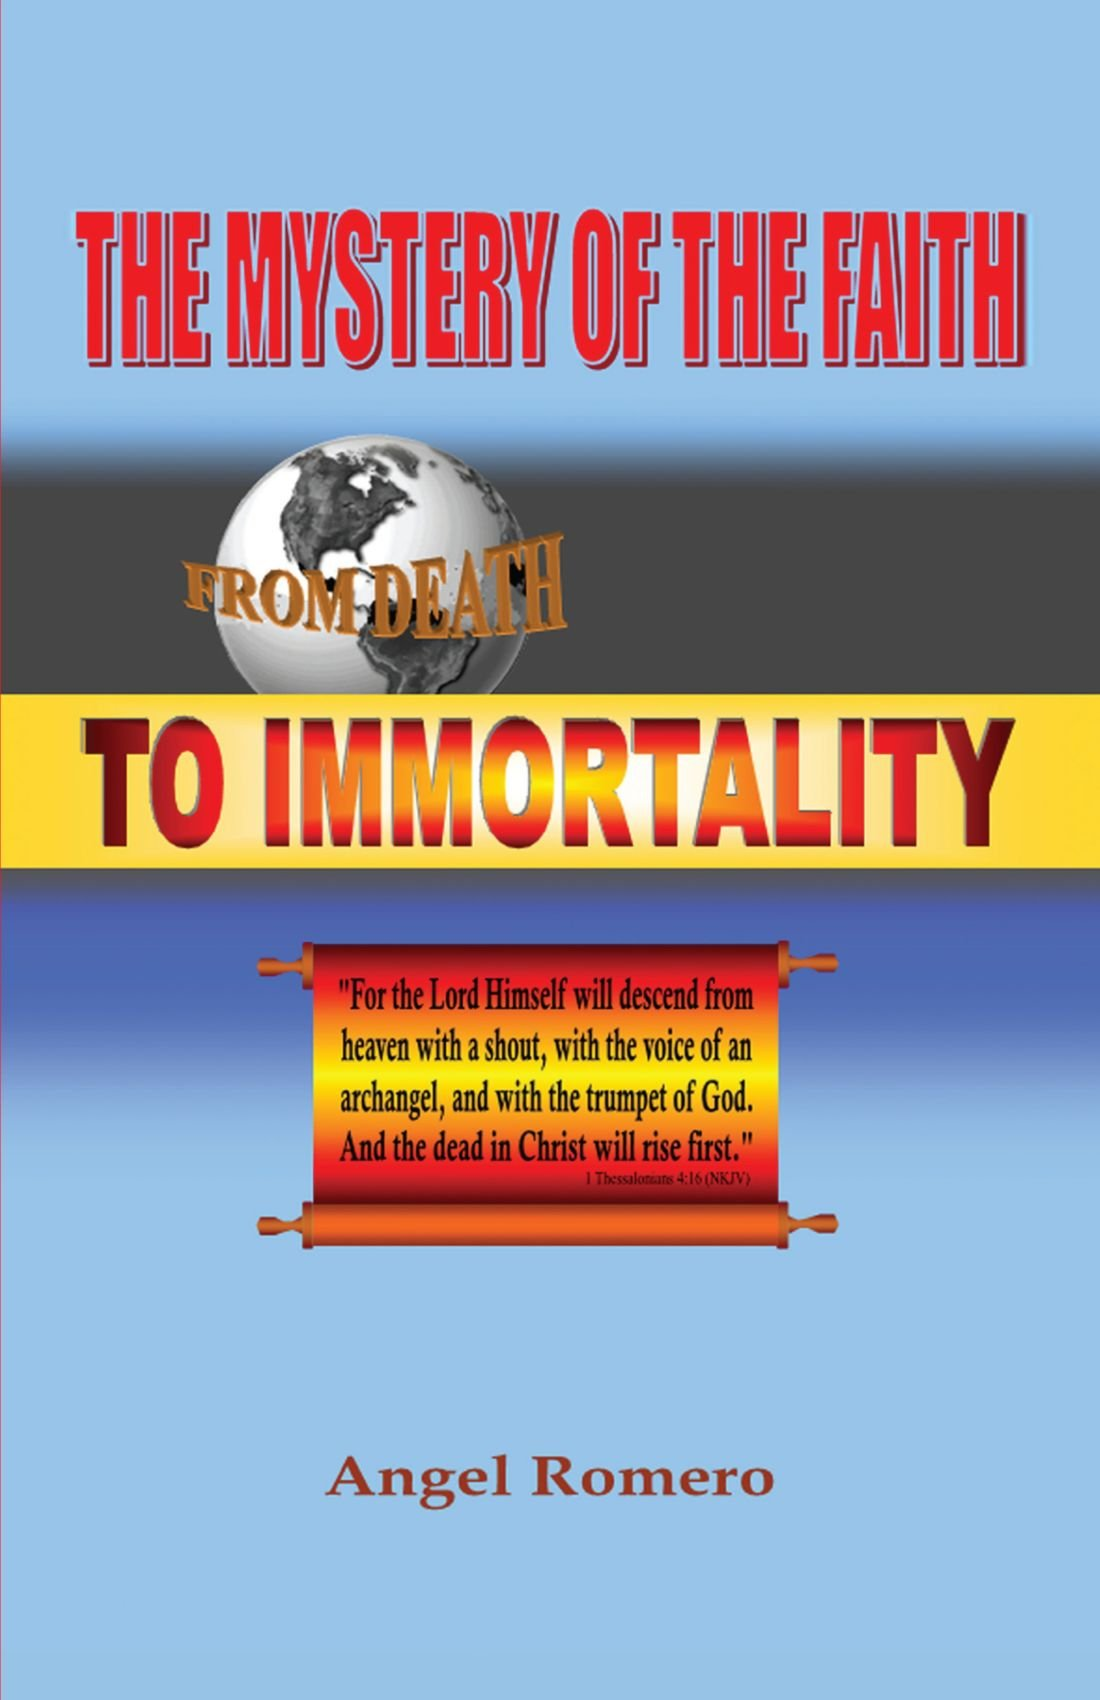 Download The Mystery of the Faith: From Death to Immortality pdf